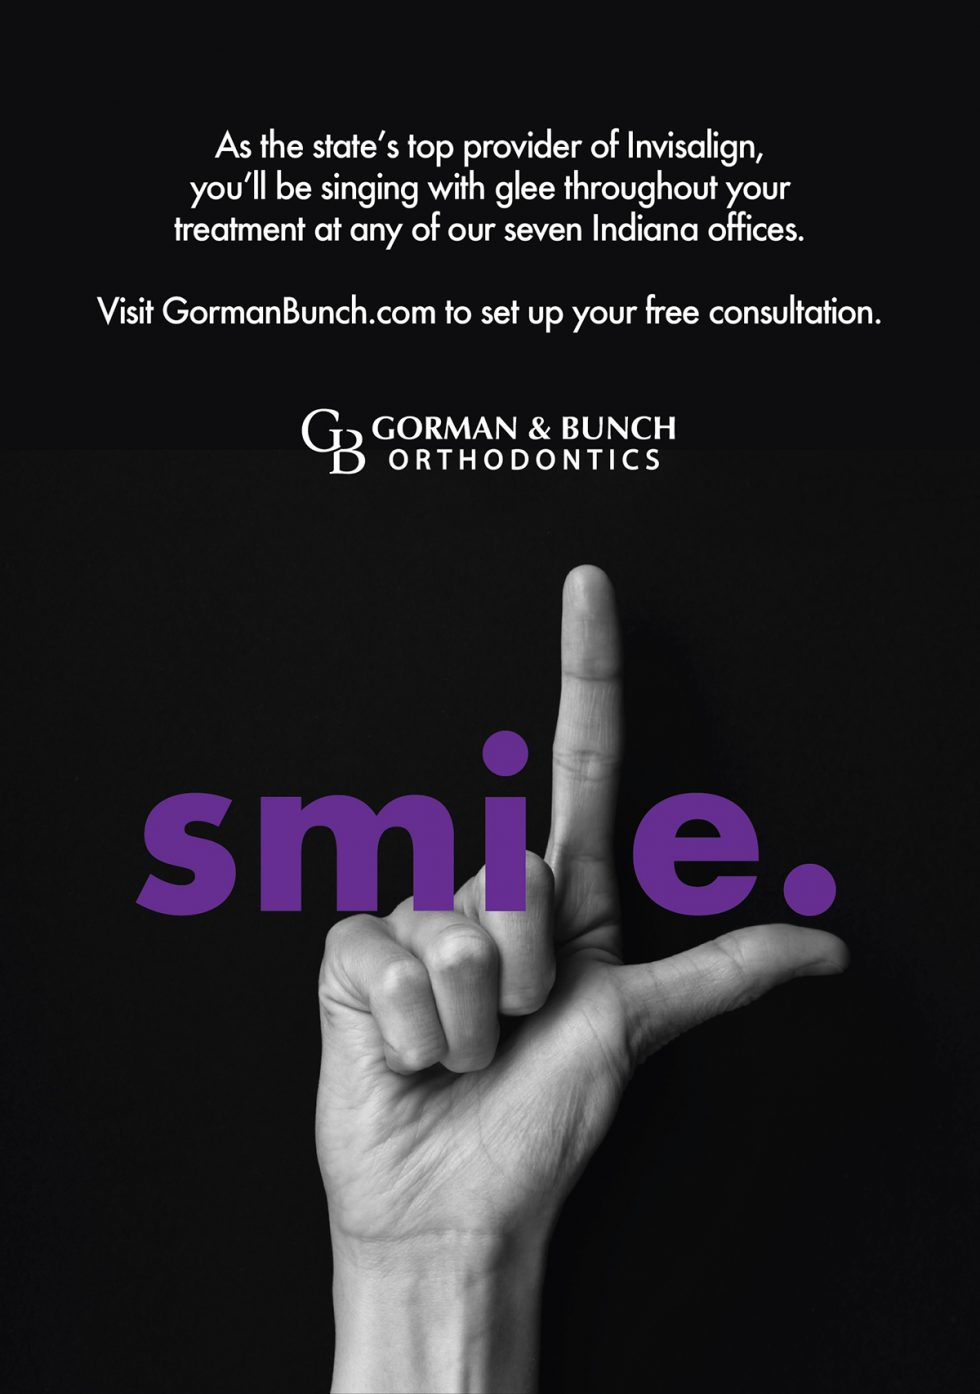 gorman-bunch-orthodontics-print-advertisement